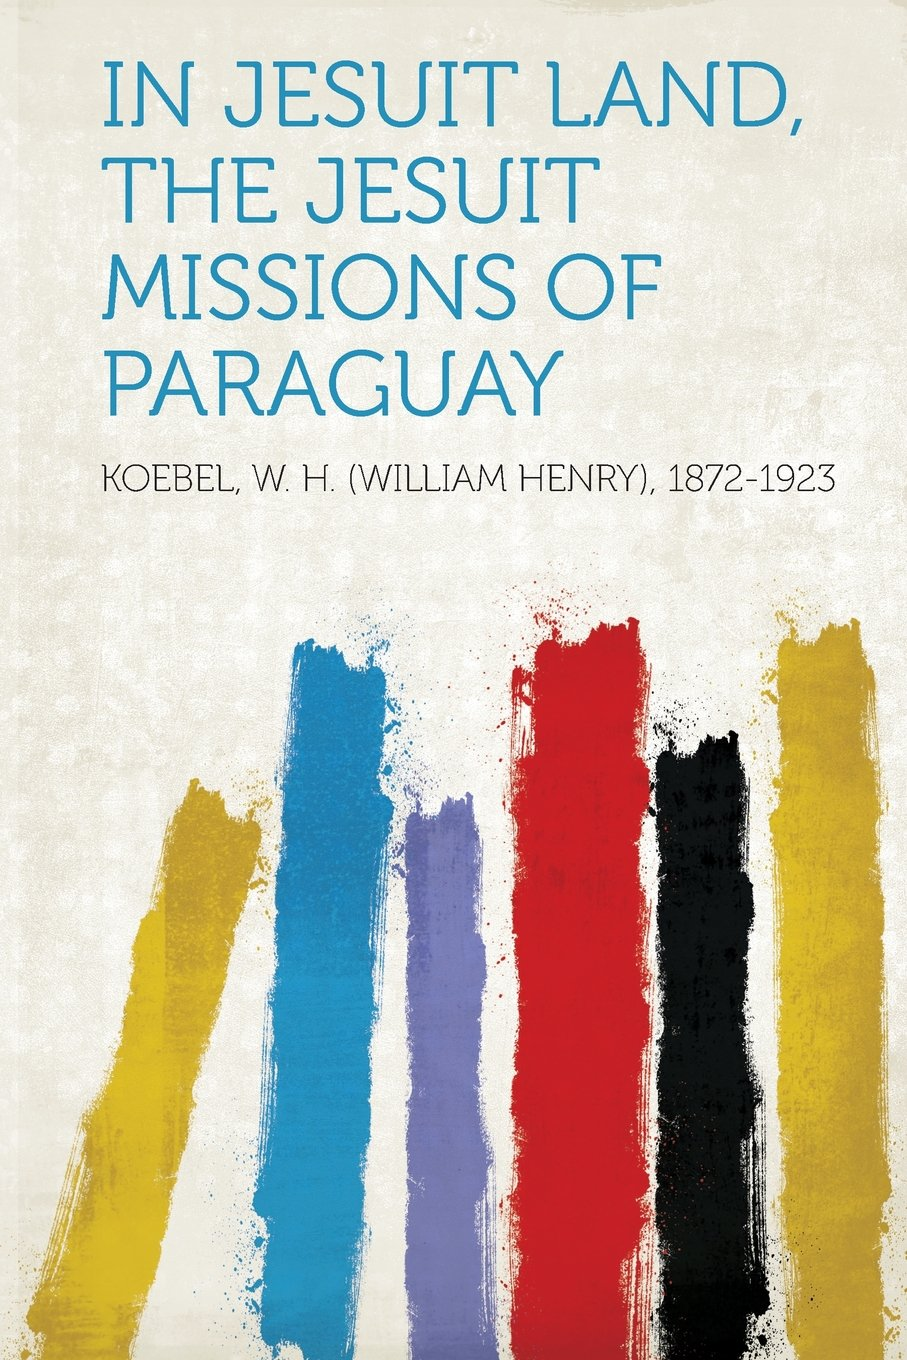 In Jesuit Land, the Jesuit Missions of Paraguay